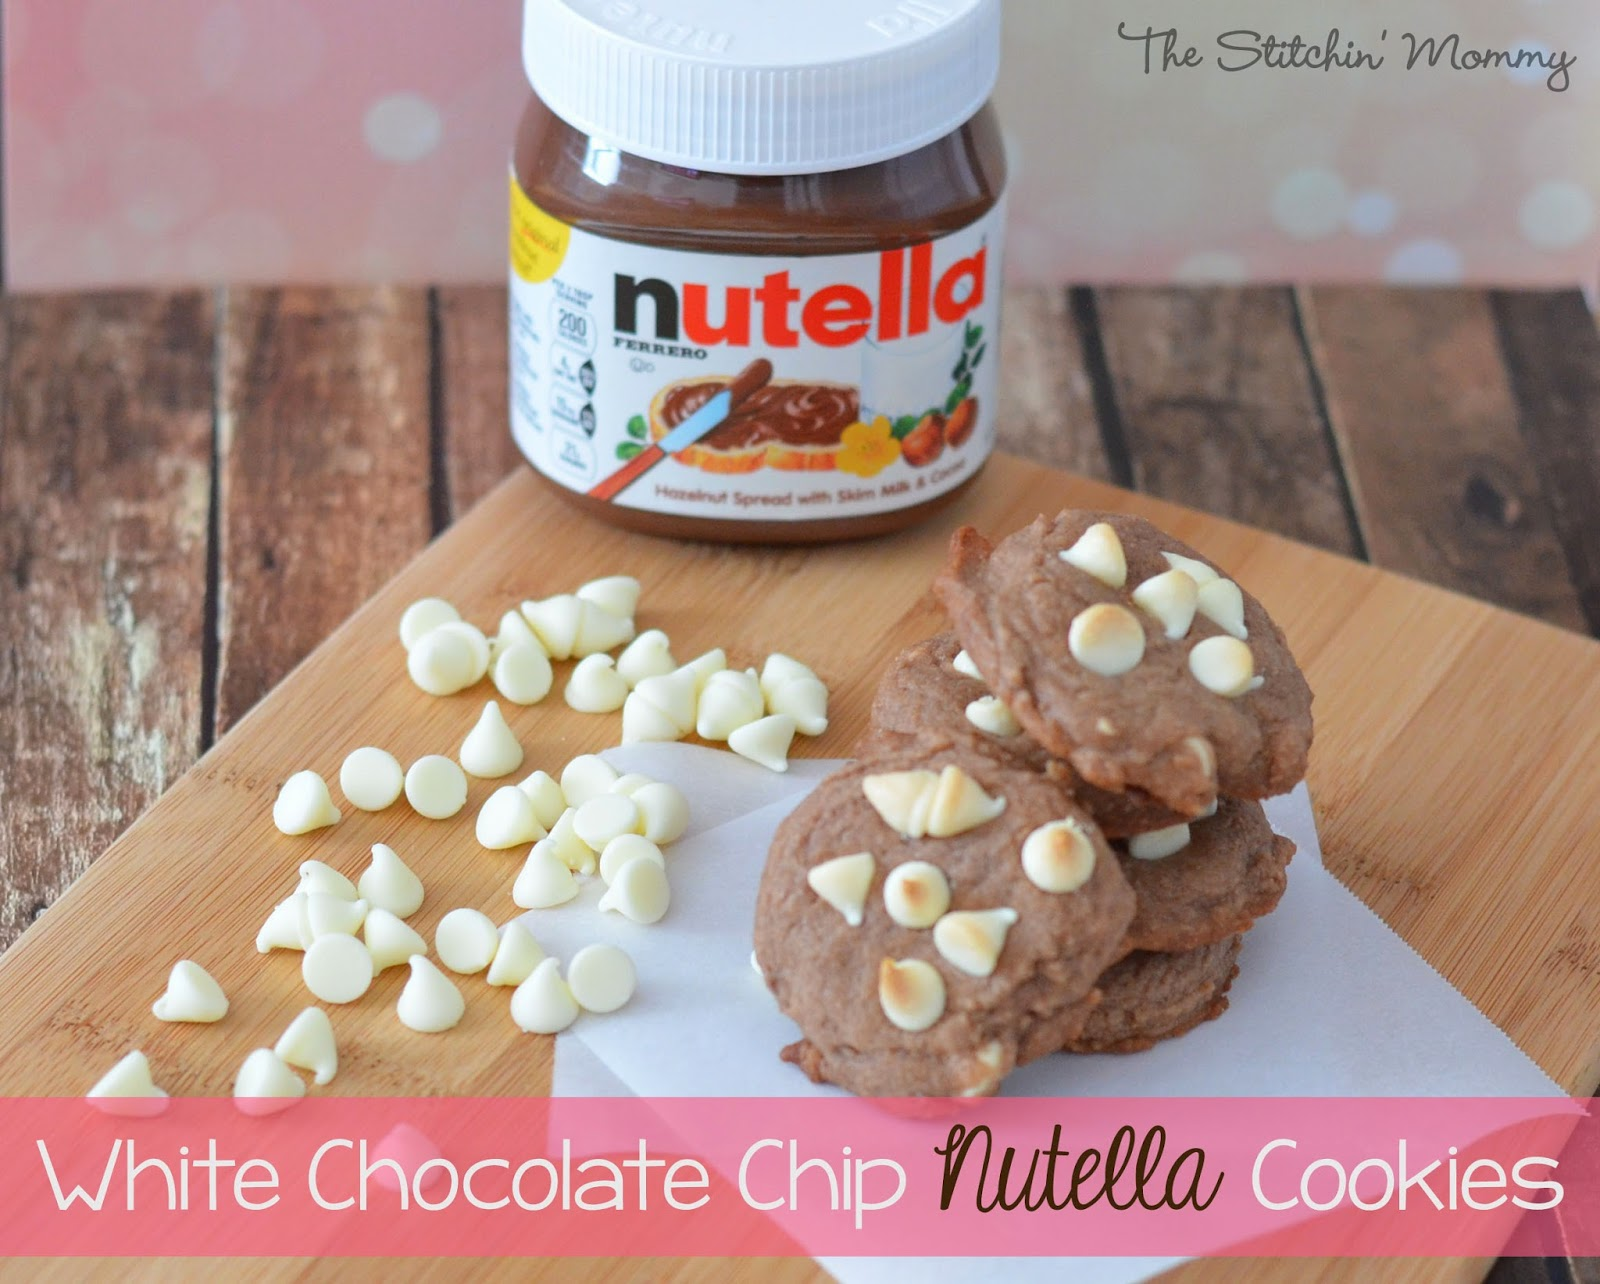 White Chocolate Chip Nutella Cookies by The Stitchin' Mommy https://www.thestitchinmommy.com